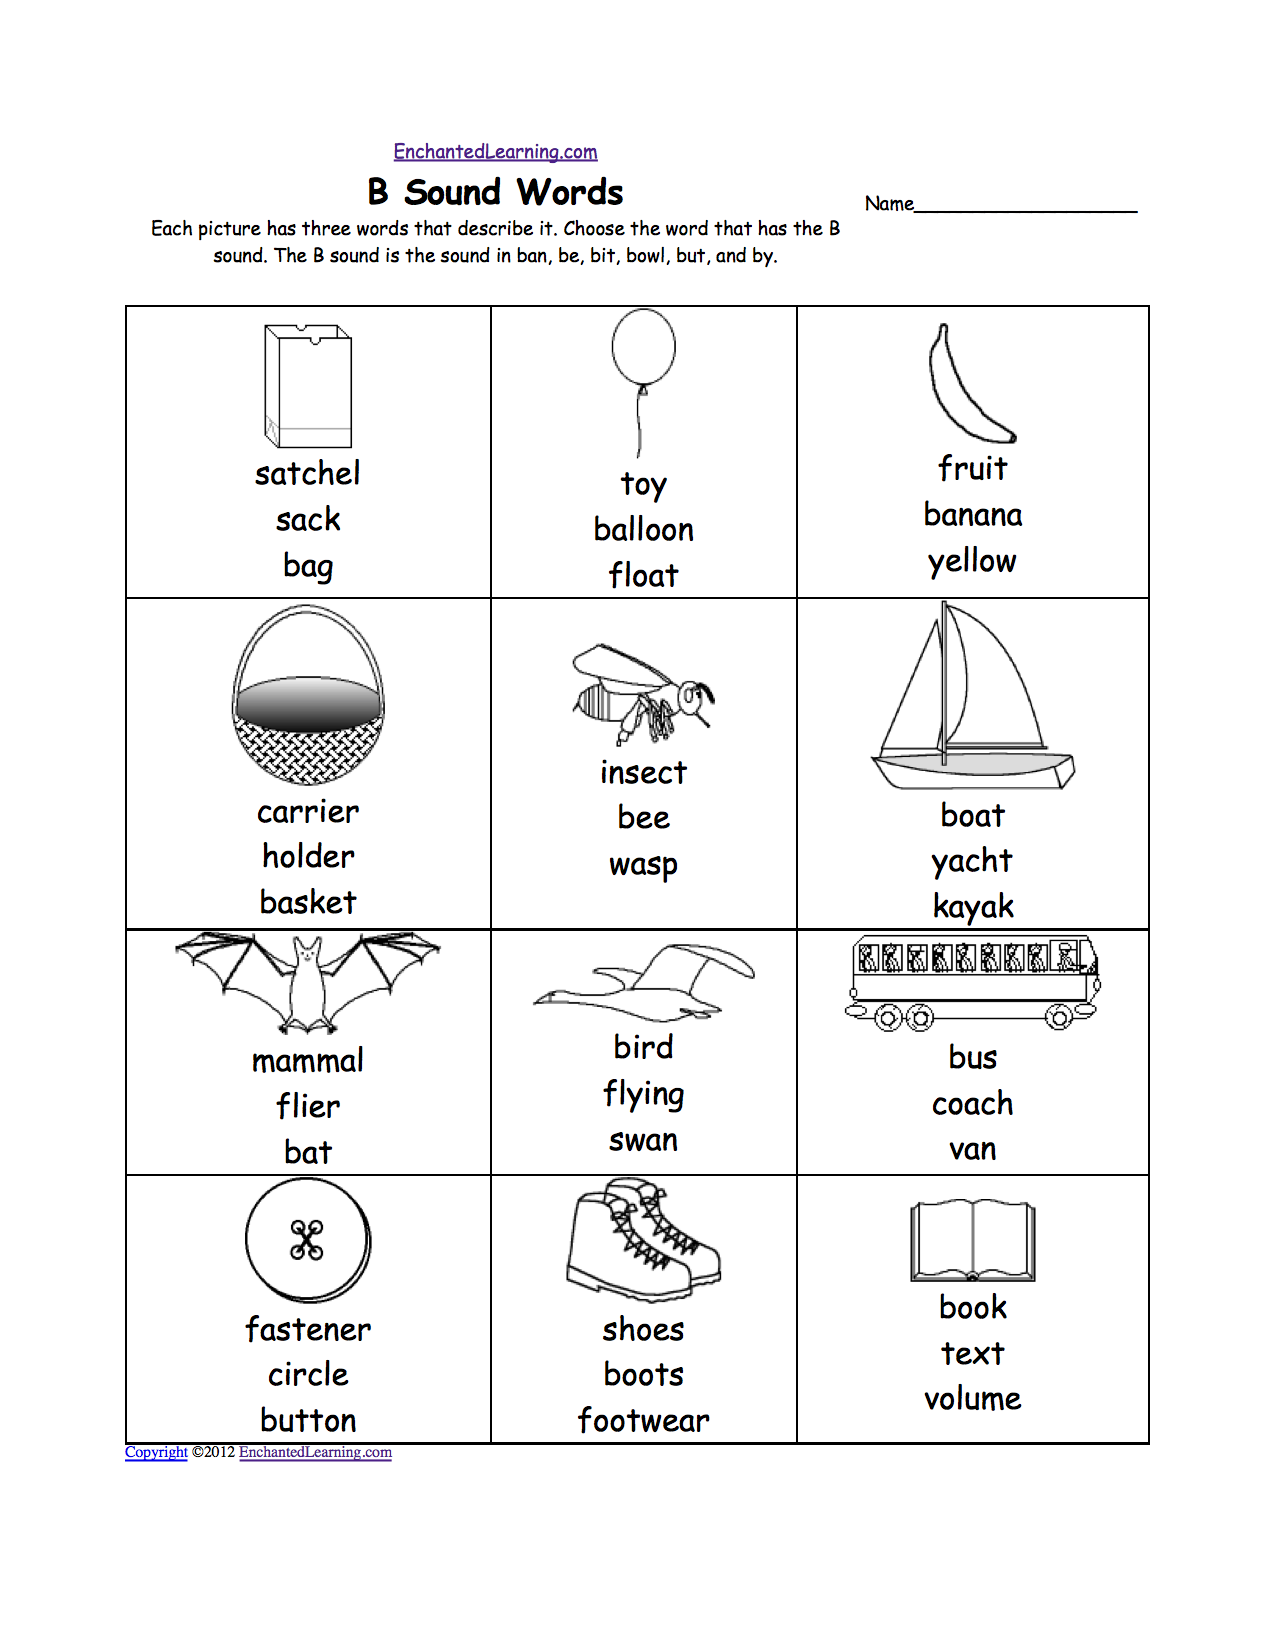 Weirdmailus  Inspiring Phonics Worksheets Multiple Choice Worksheets To Print  With Engaging Quotbquot Sound Phonics Worksheet Multiple Choice Each Picture Has Three Words That Describe It Choose The Word That Has A Quotbquot Sound The Quotbquot Sound Is The Sound  With Appealing Pssa Practice Worksheets Also Hyperbole Worksheets Th Grade In Addition Math Worksheets Equations And  Types Of Rocks Worksheet As Well As Complete And Incomplete Metamorphosis Worksheet Additionally Potential And Kinetic Energy Worksheets Middle School From Enchantedlearningcom With Weirdmailus  Engaging Phonics Worksheets Multiple Choice Worksheets To Print  With Appealing Quotbquot Sound Phonics Worksheet Multiple Choice Each Picture Has Three Words That Describe It Choose The Word That Has A Quotbquot Sound The Quotbquot Sound Is The Sound  And Inspiring Pssa Practice Worksheets Also Hyperbole Worksheets Th Grade In Addition Math Worksheets Equations From Enchantedlearningcom